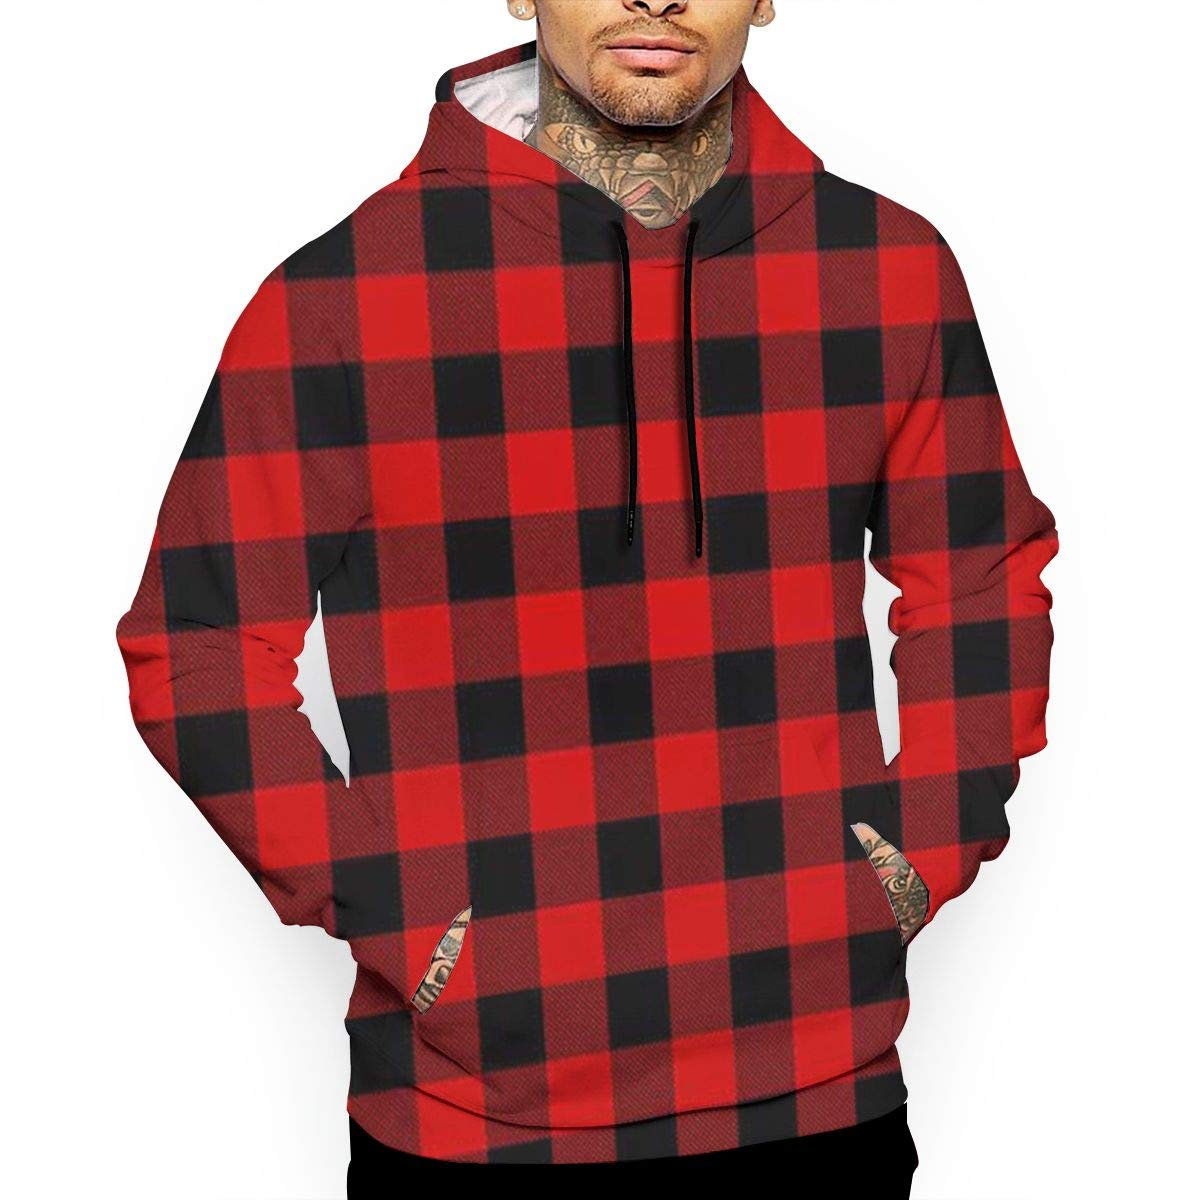 Buffalo Plaid Red Checkered T-Shirt Hooded with A Pocket Rope Hat Customization Fashion Novelty 3D Mens